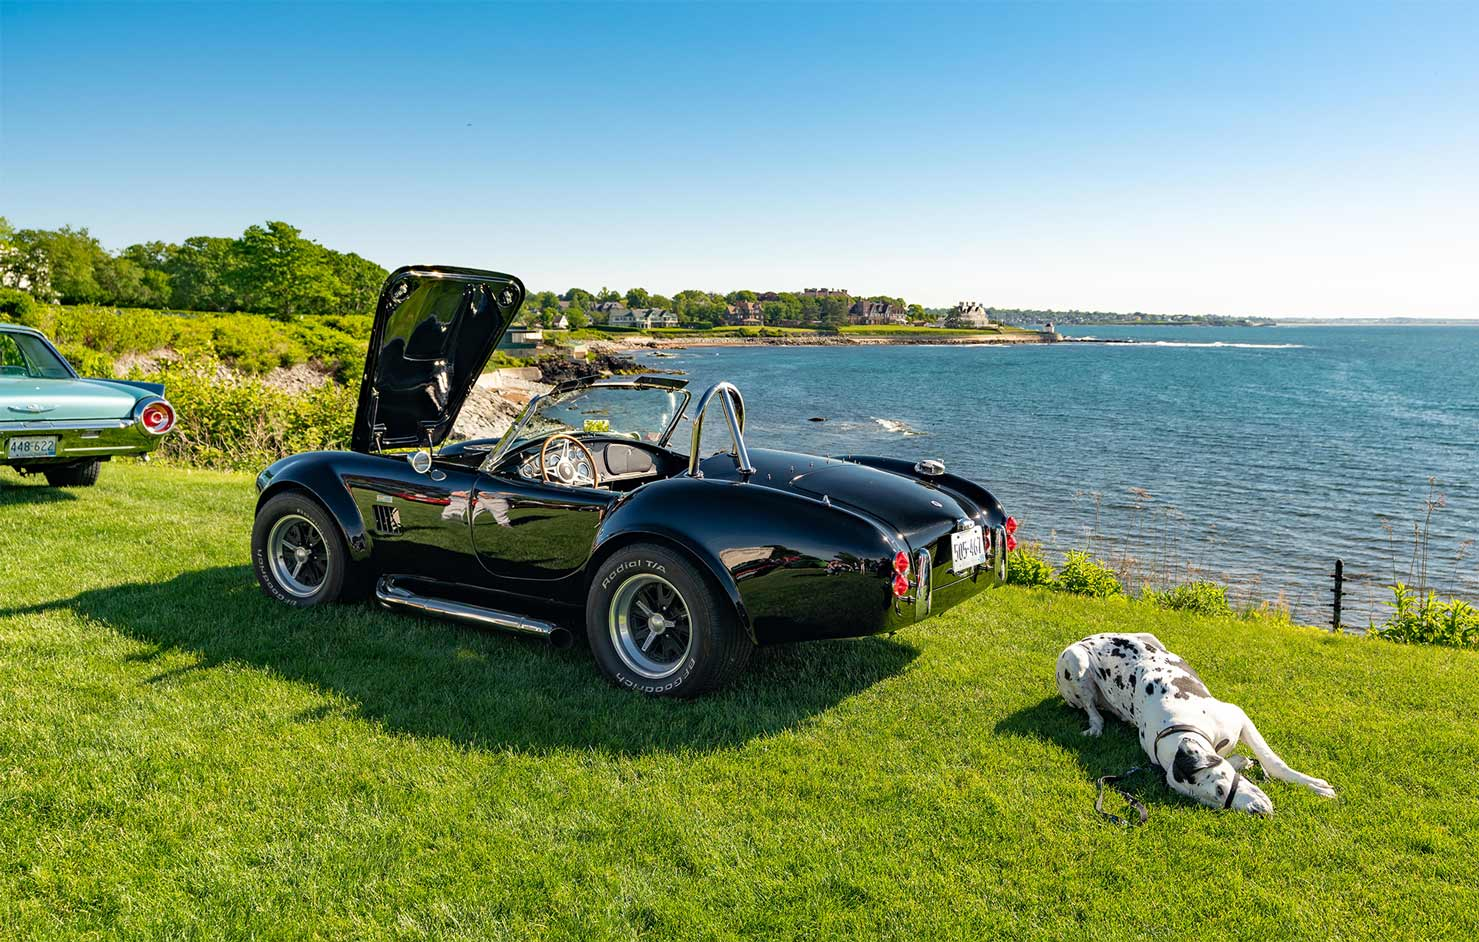 Black classic car with dalmatian dog in the grass